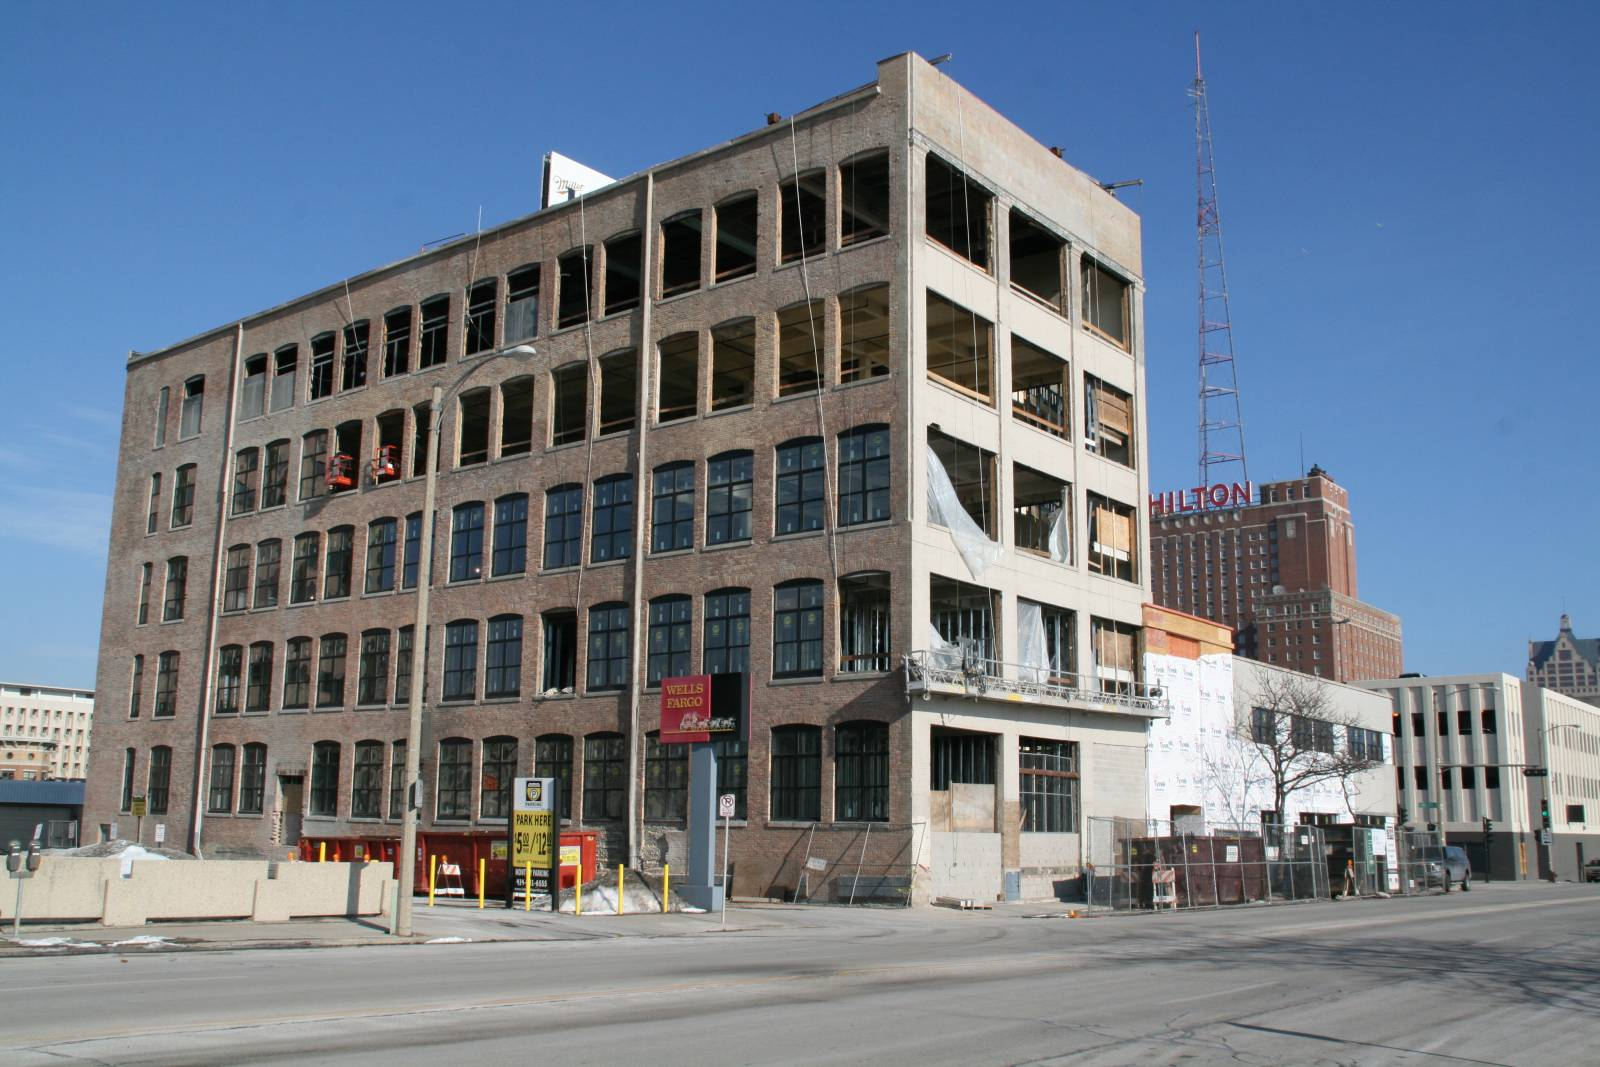 700 Lofts Construction